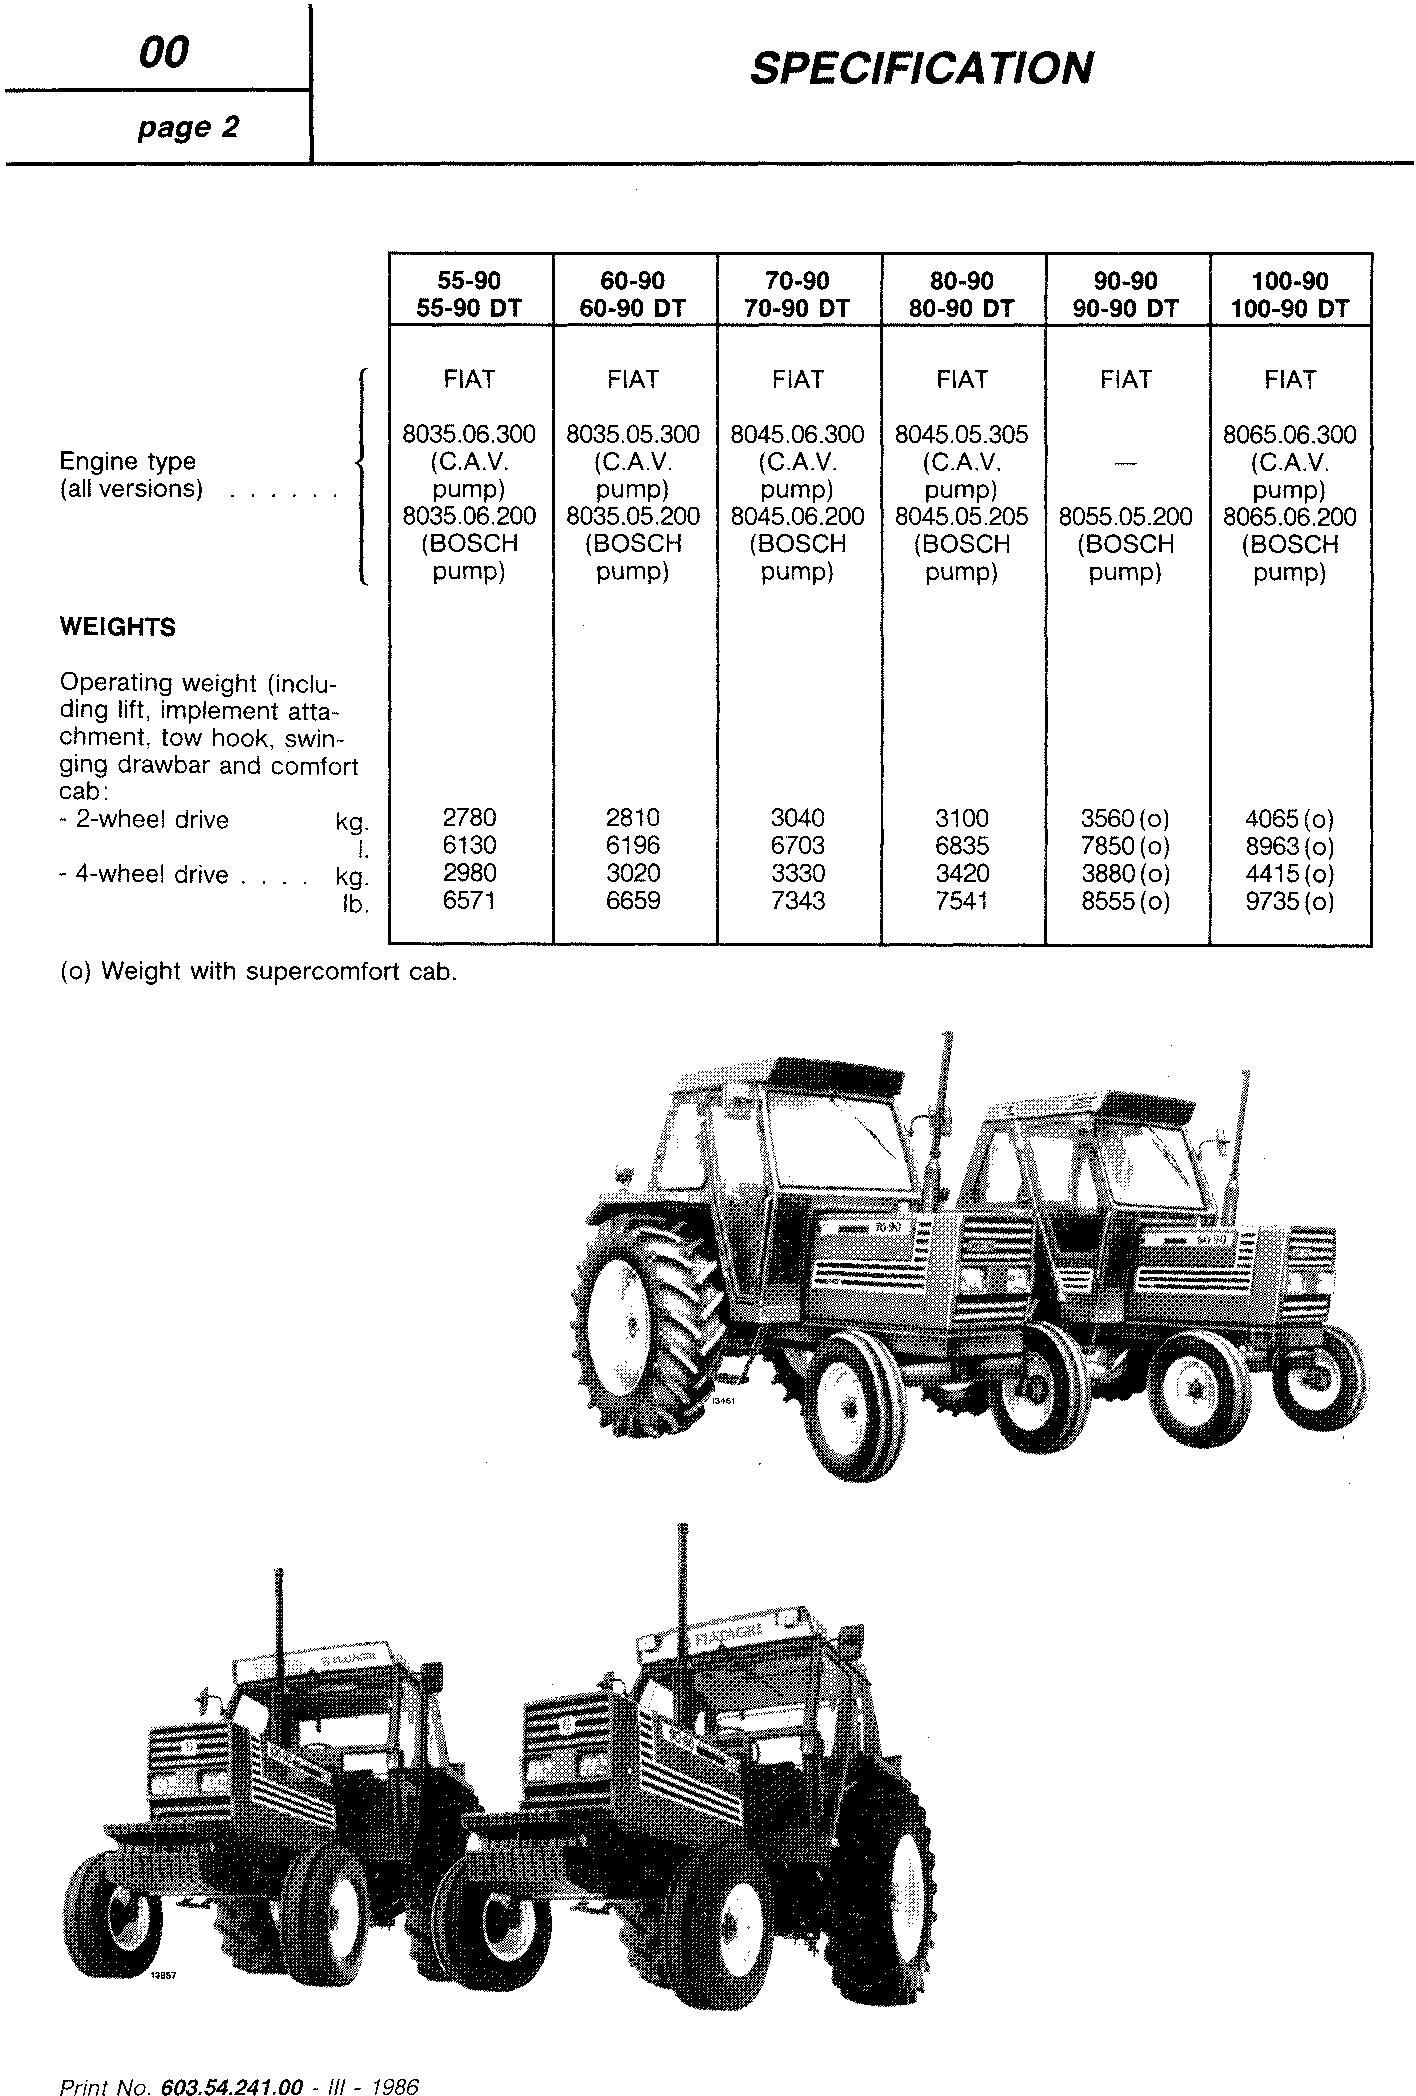 Fiat 55-90, 60-90, 70-90, 80-90, 90-90, 100- 90 Tractor Service Manual (6035424100) - 1